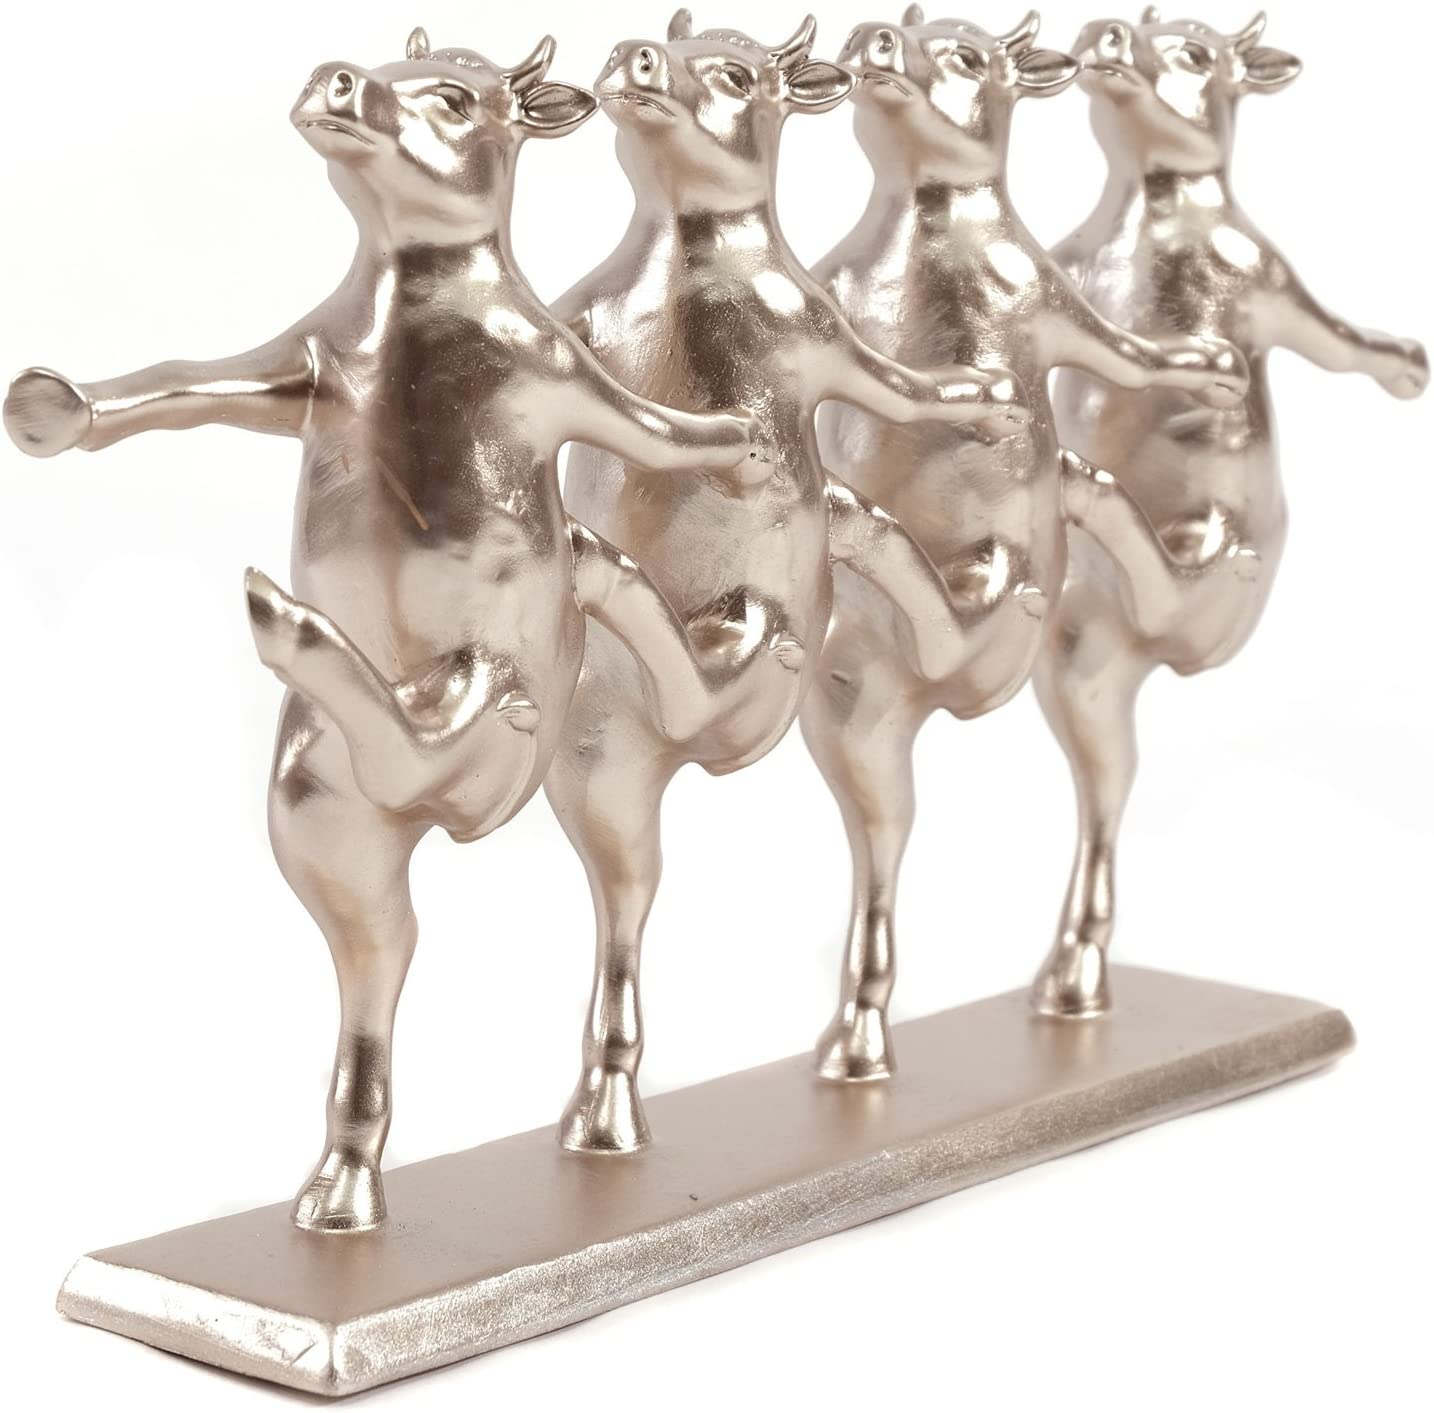 Fancy Decorazione Figura 'cow Party | Rosegold, In Poliresina, 40,6 Cm | Scultura Con Mucche